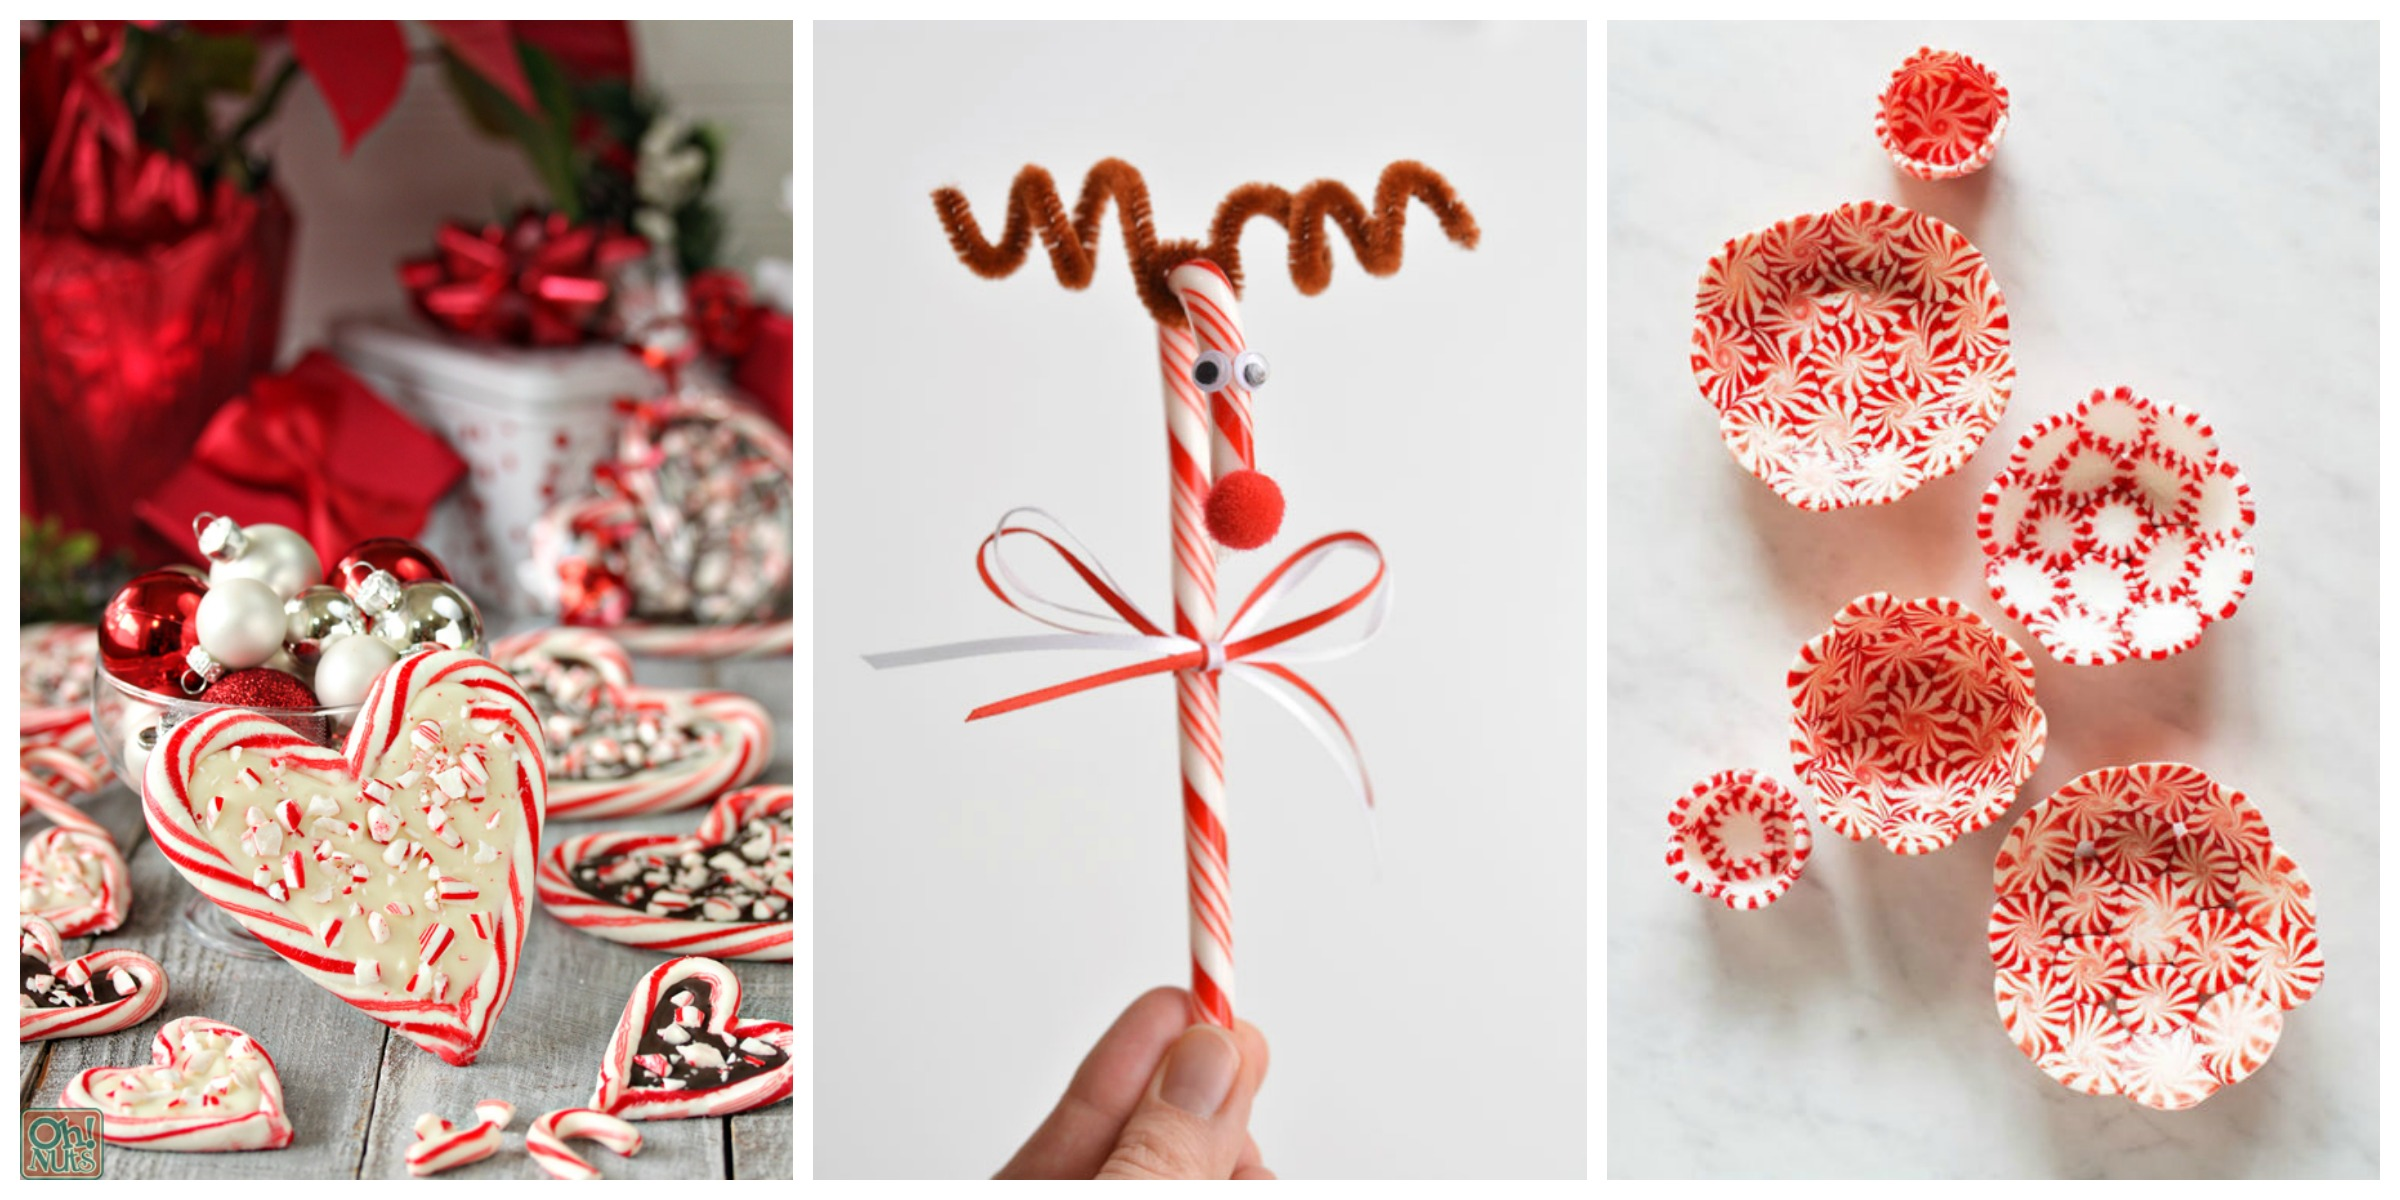 Candy cane crafts diy decorations with canes